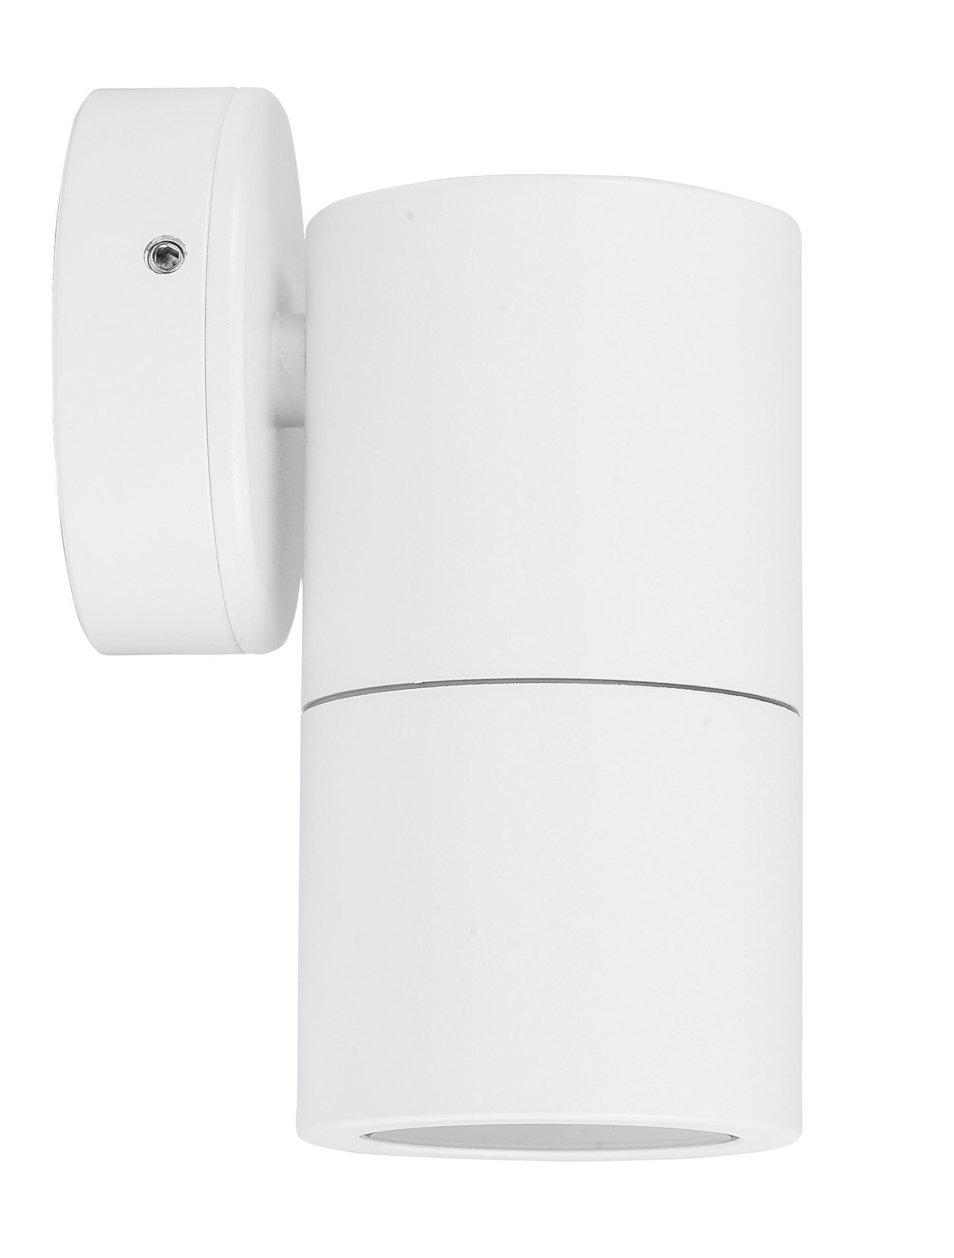 Exterior Wall Light TIVAH - Fixed Down Wall Light